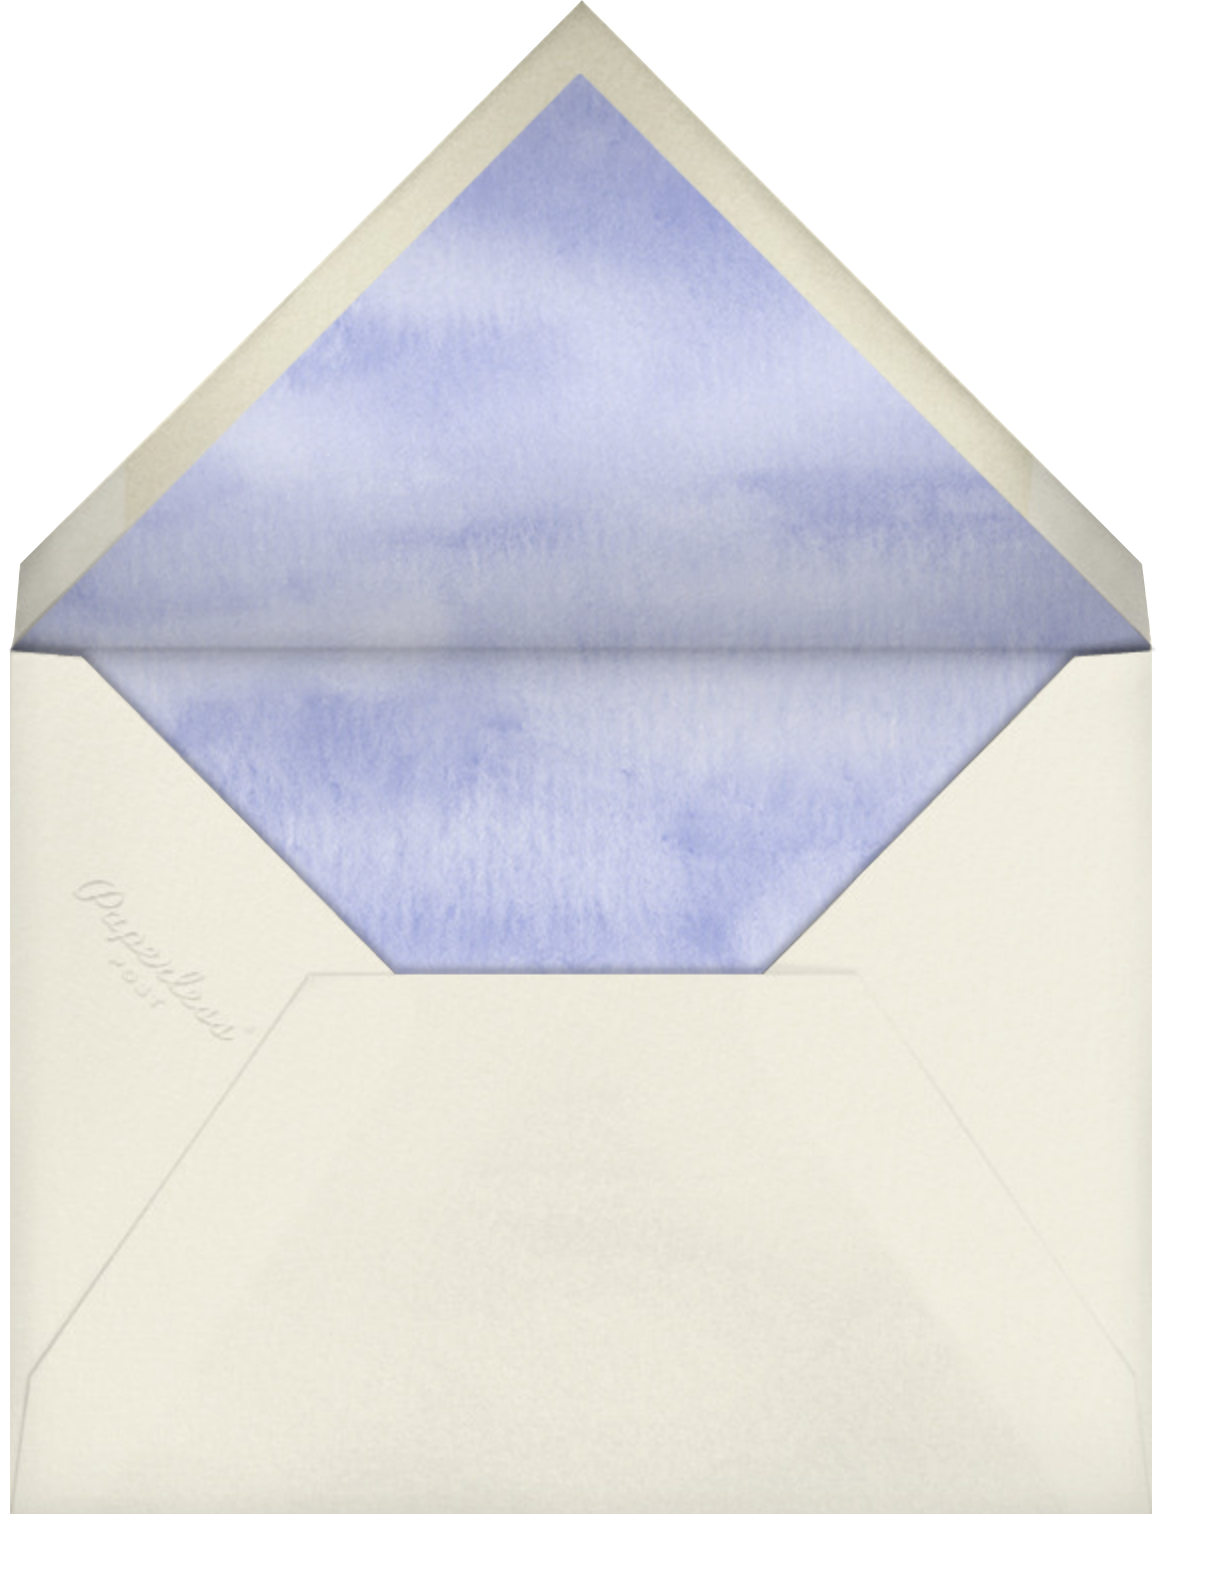 Moth Orchid (Stationery) - Felix Doolittle - Personalized stationery - envelope back